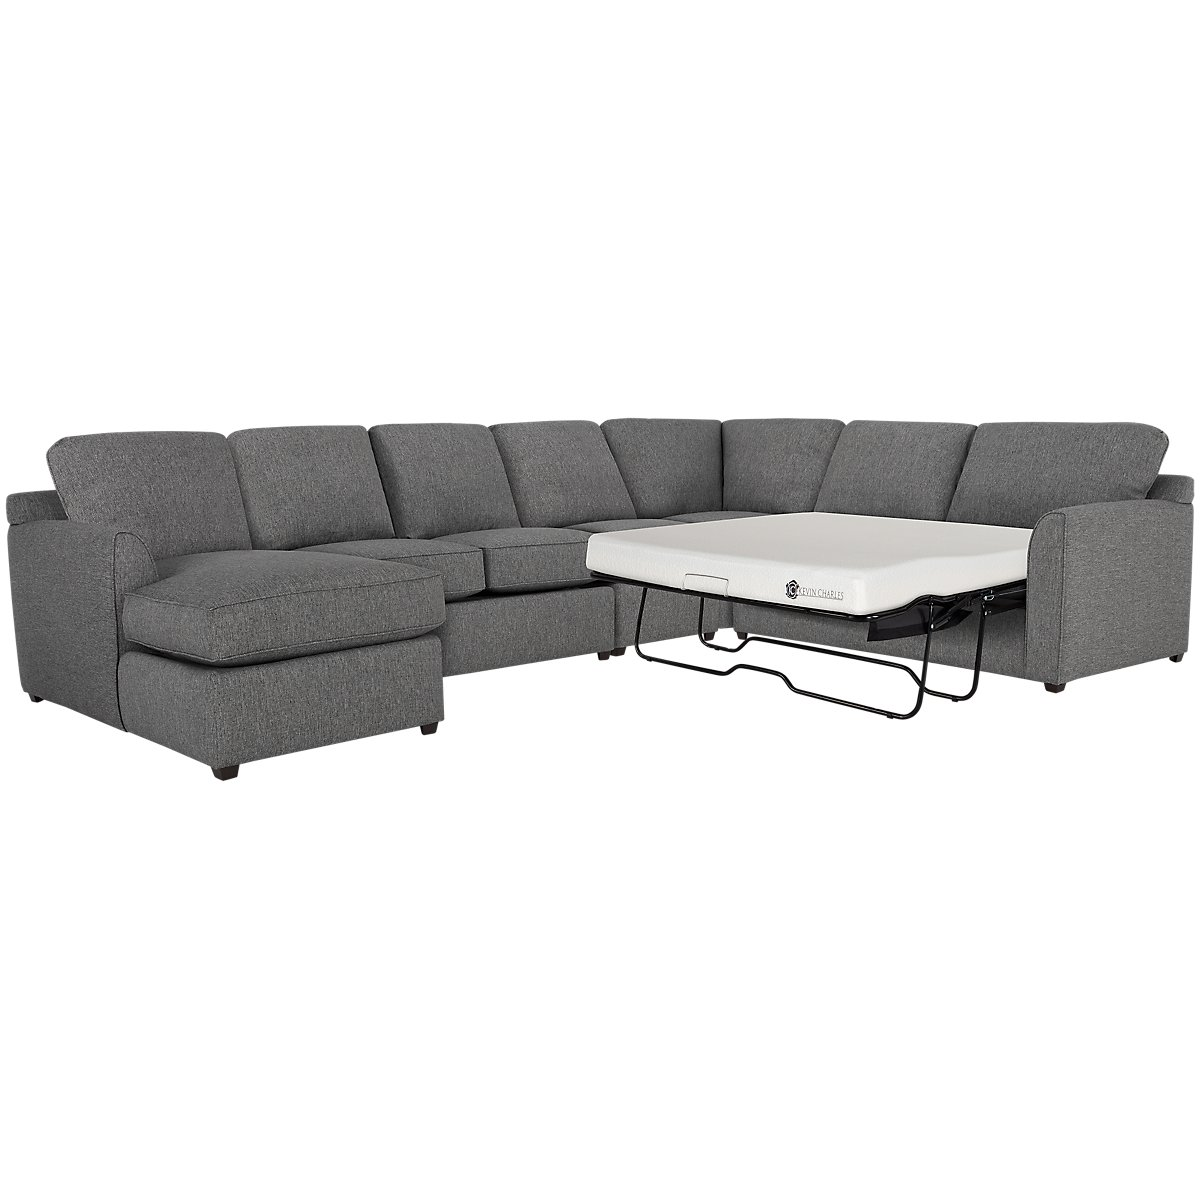 Asheville Gray Fabric Left Chaise Memory Foam Sleeper Sectional